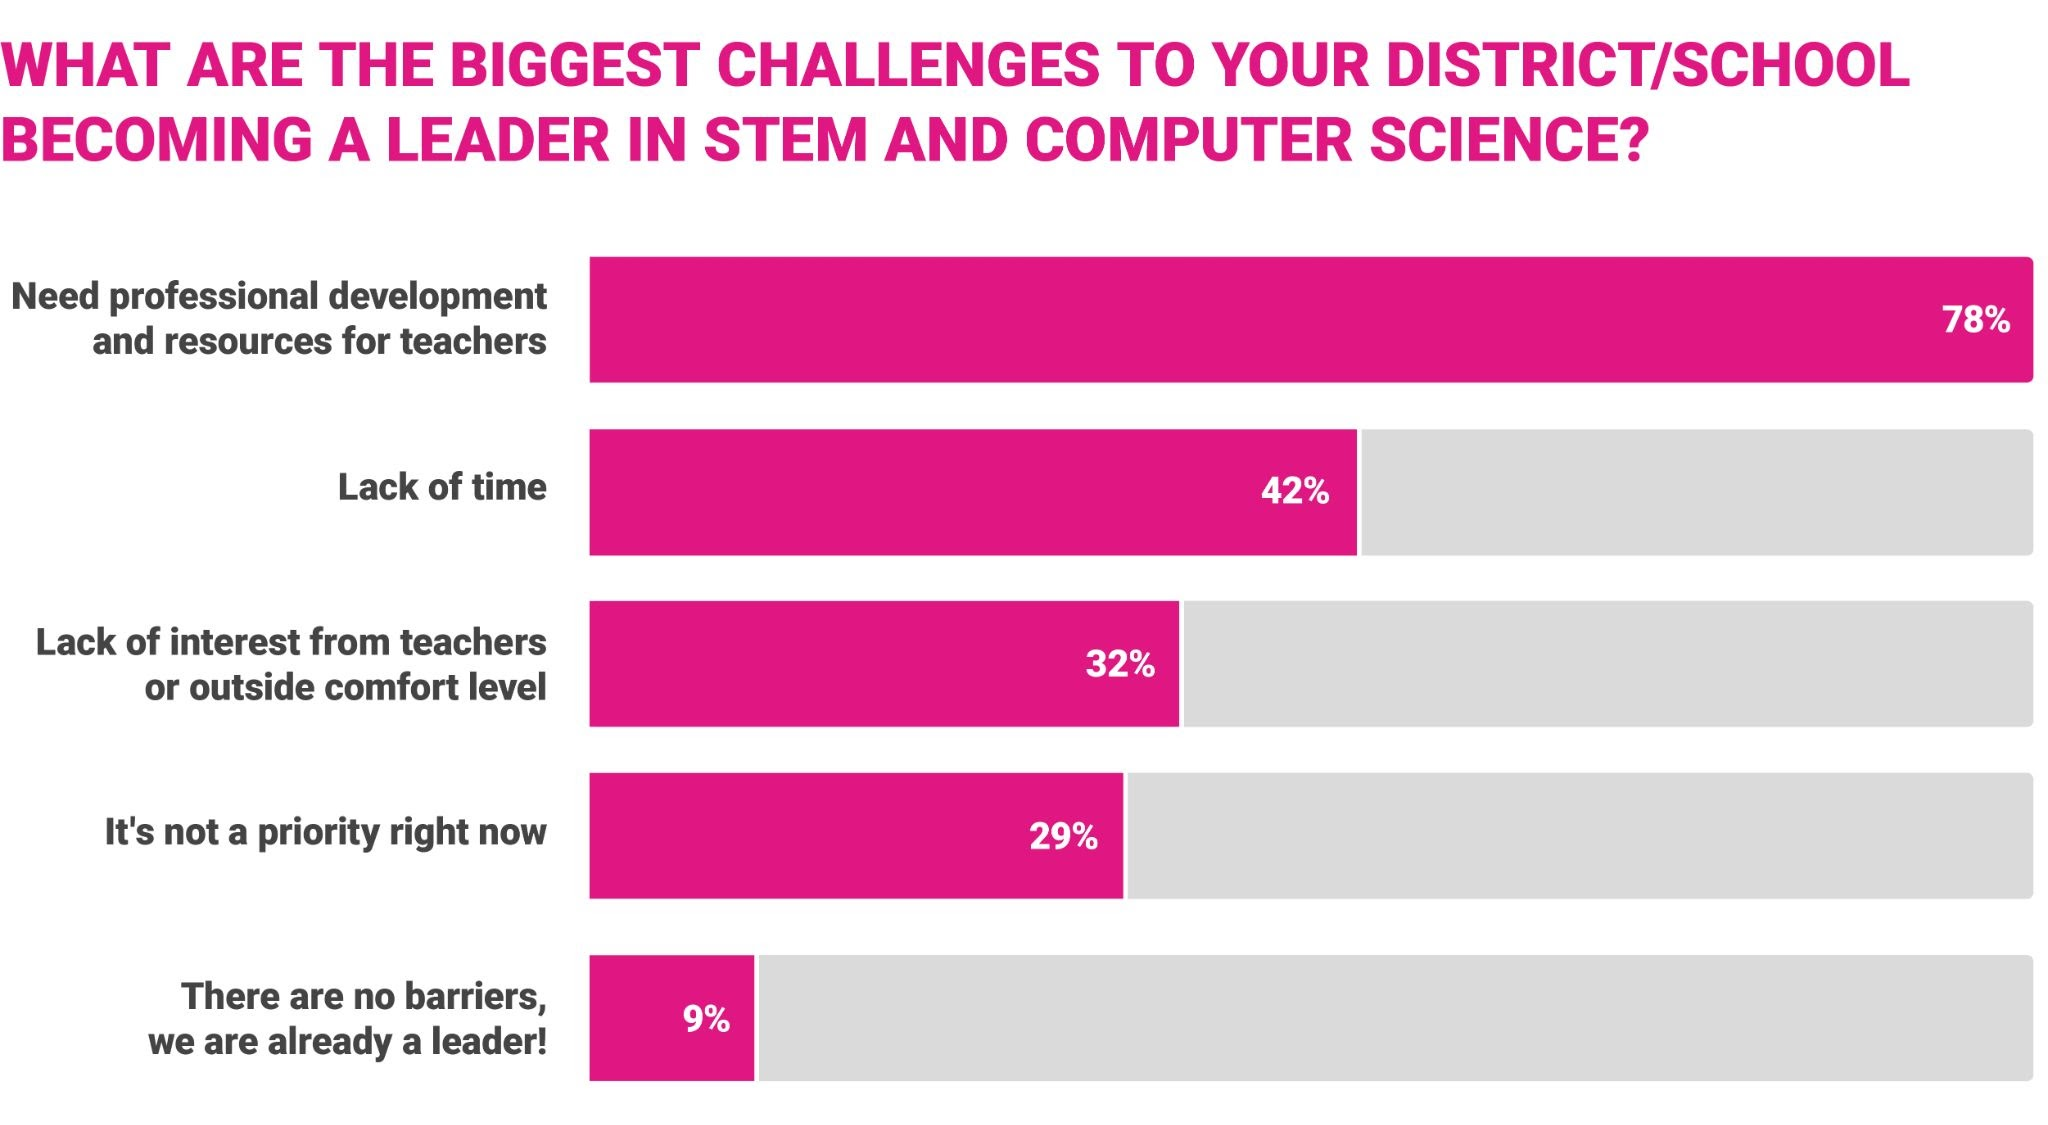 What are the biggest challenges to you district/school becoming a leader in STEM and CS?